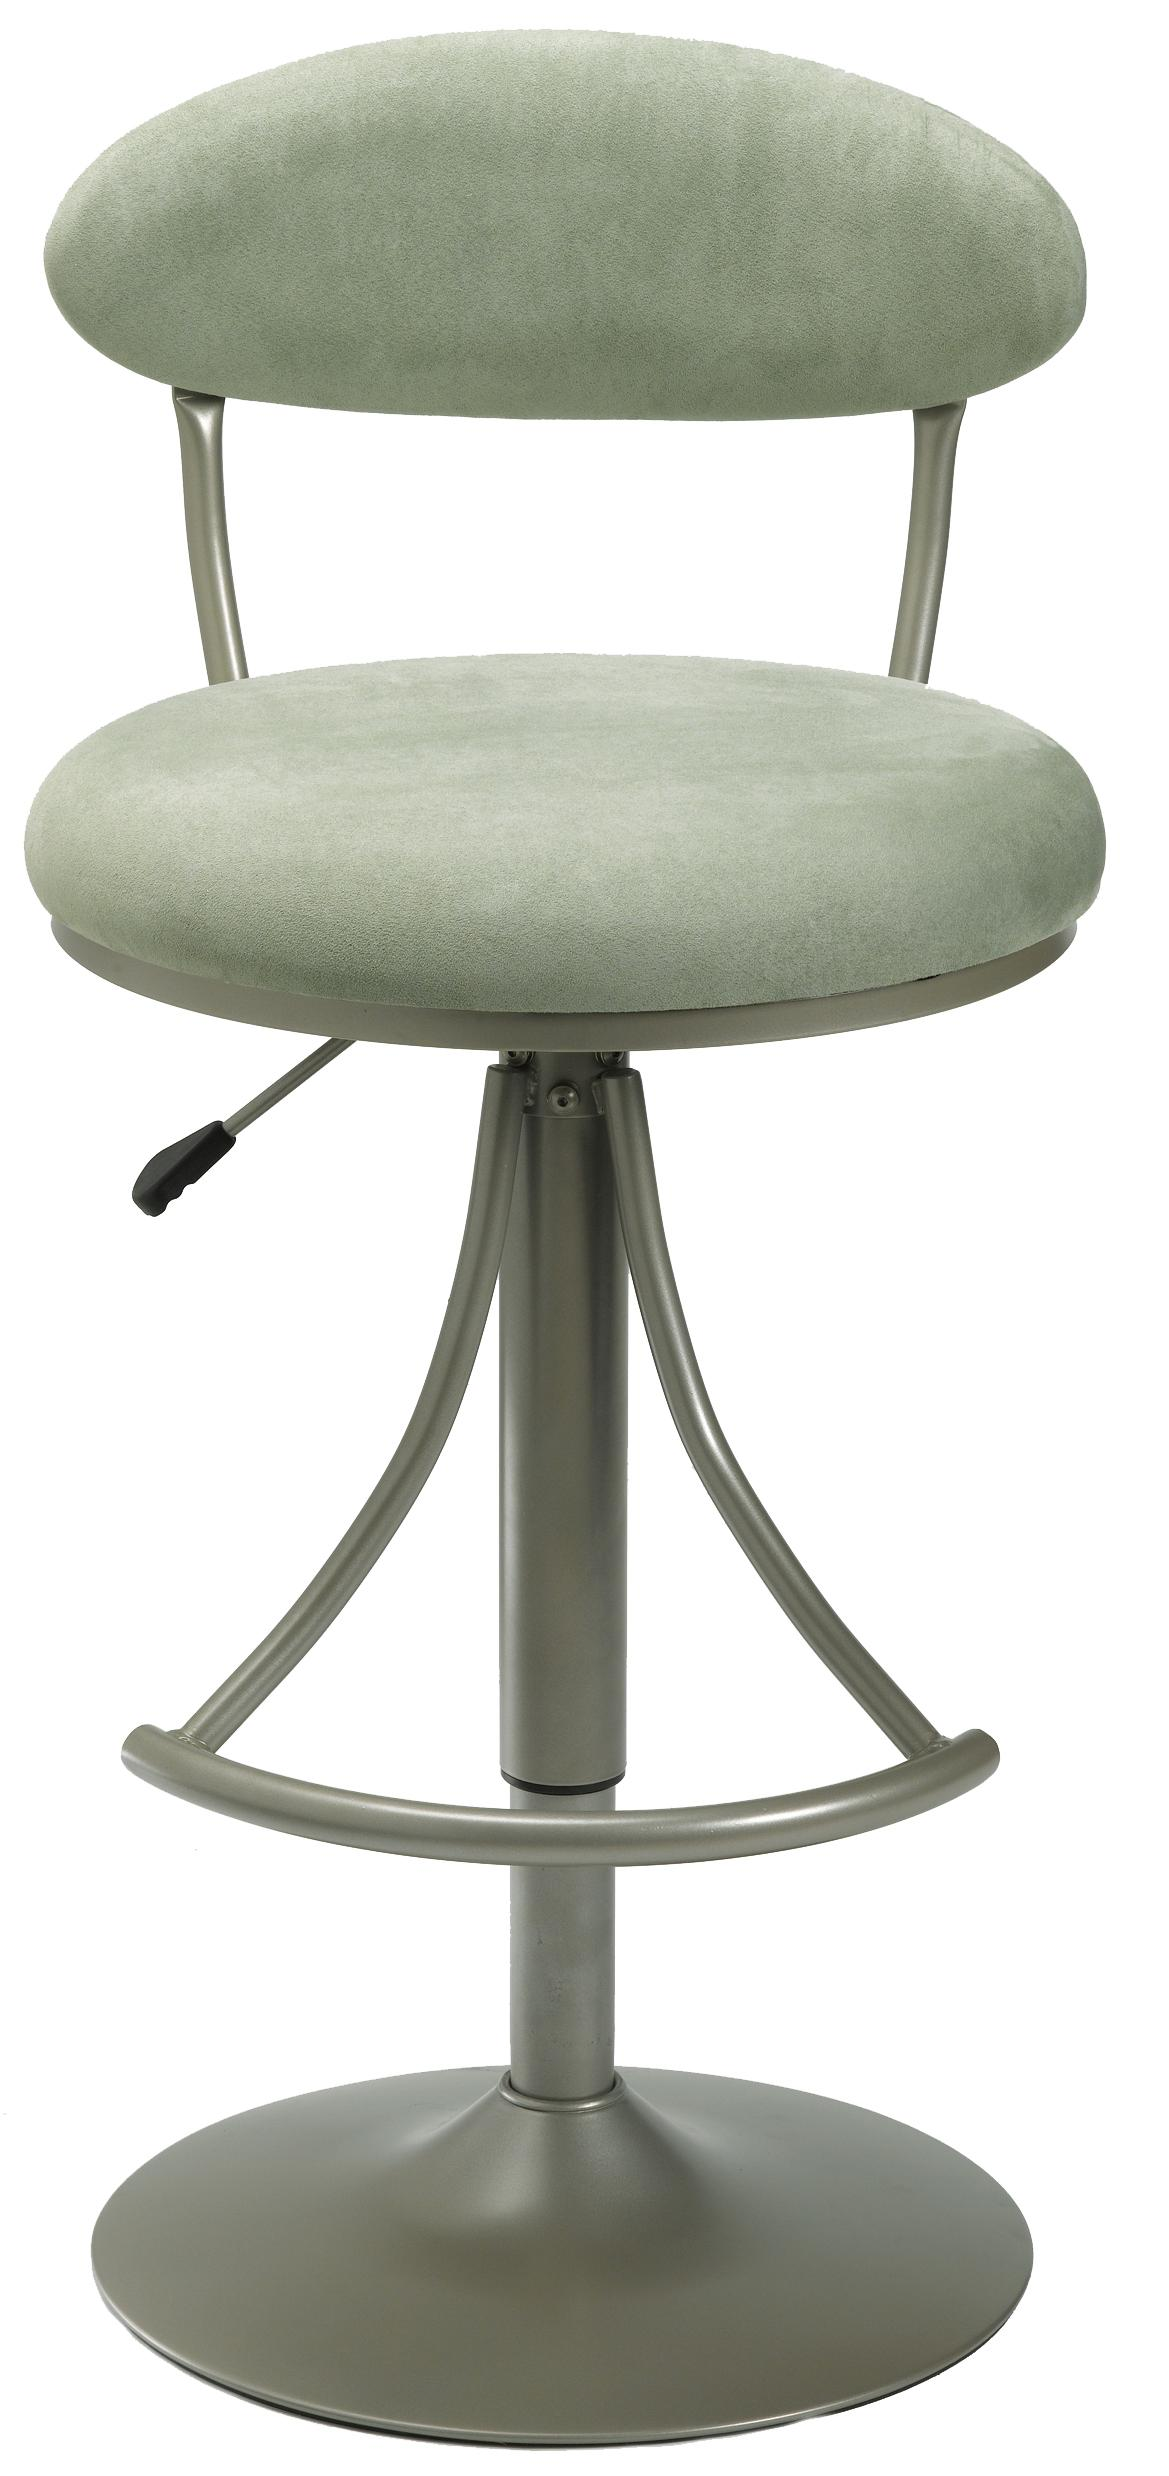 Hillsdale Metal Stools Adjustable Height Venus Swivel Stool - Item Number: 4210-826